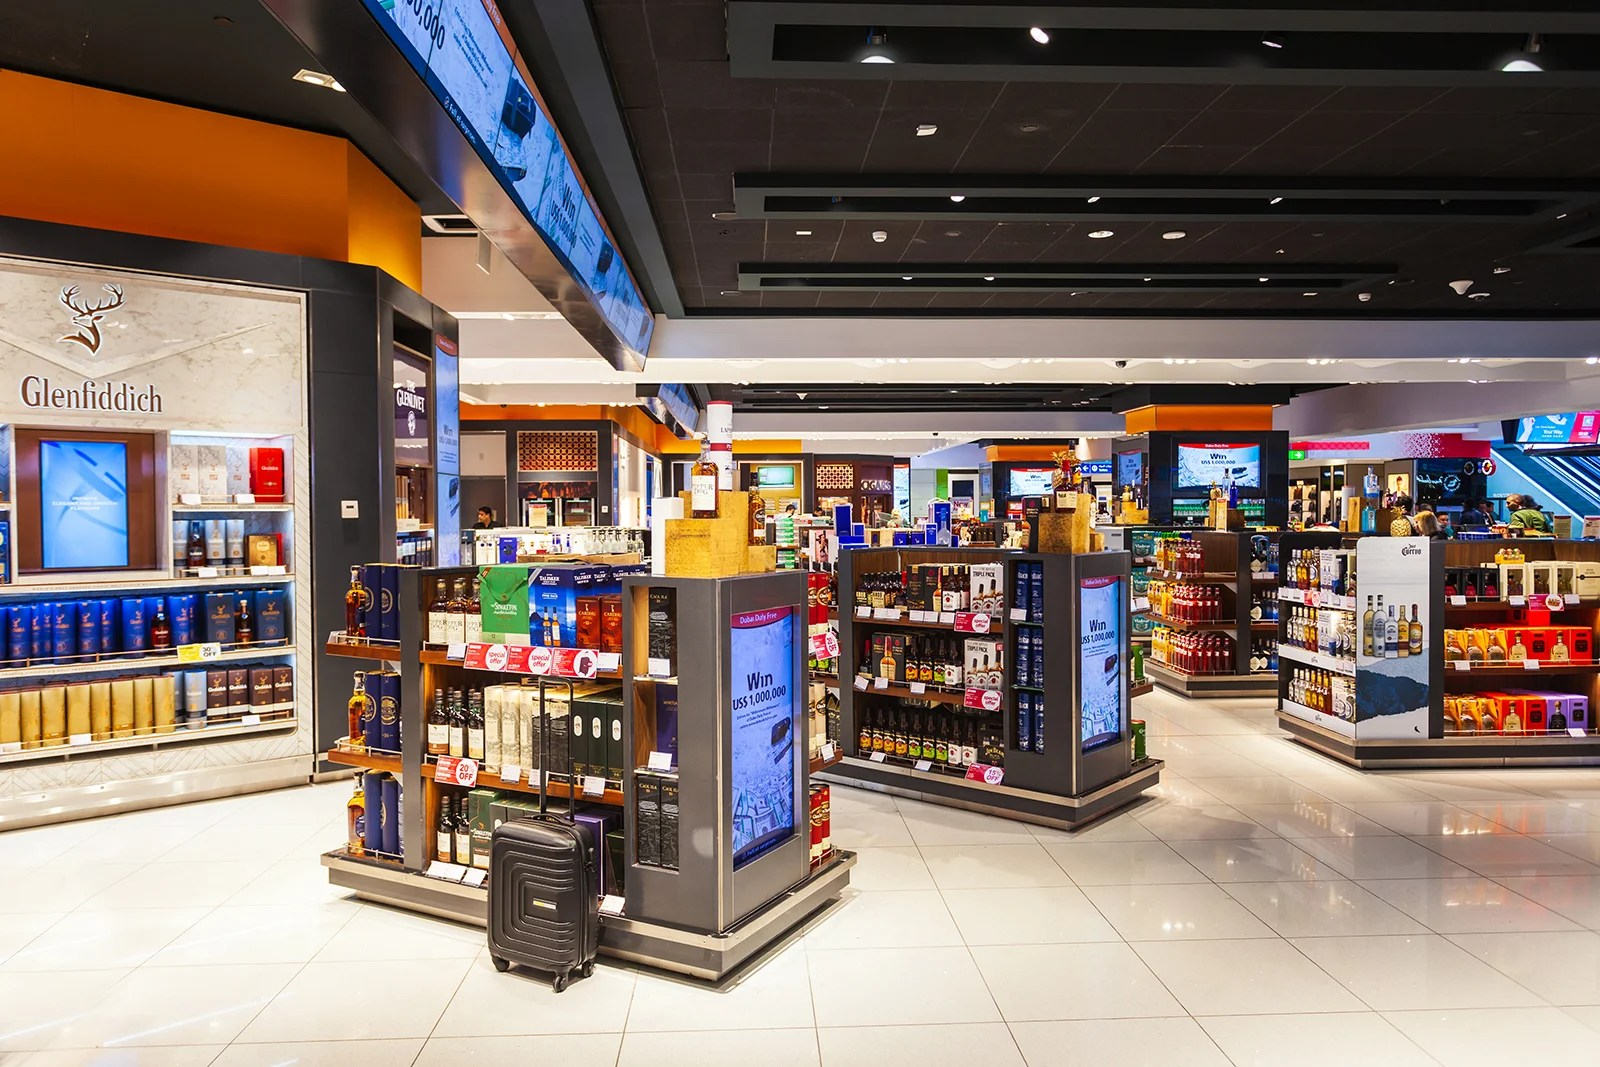 Where's the cheapest duty free? We checked 50 airports to find out